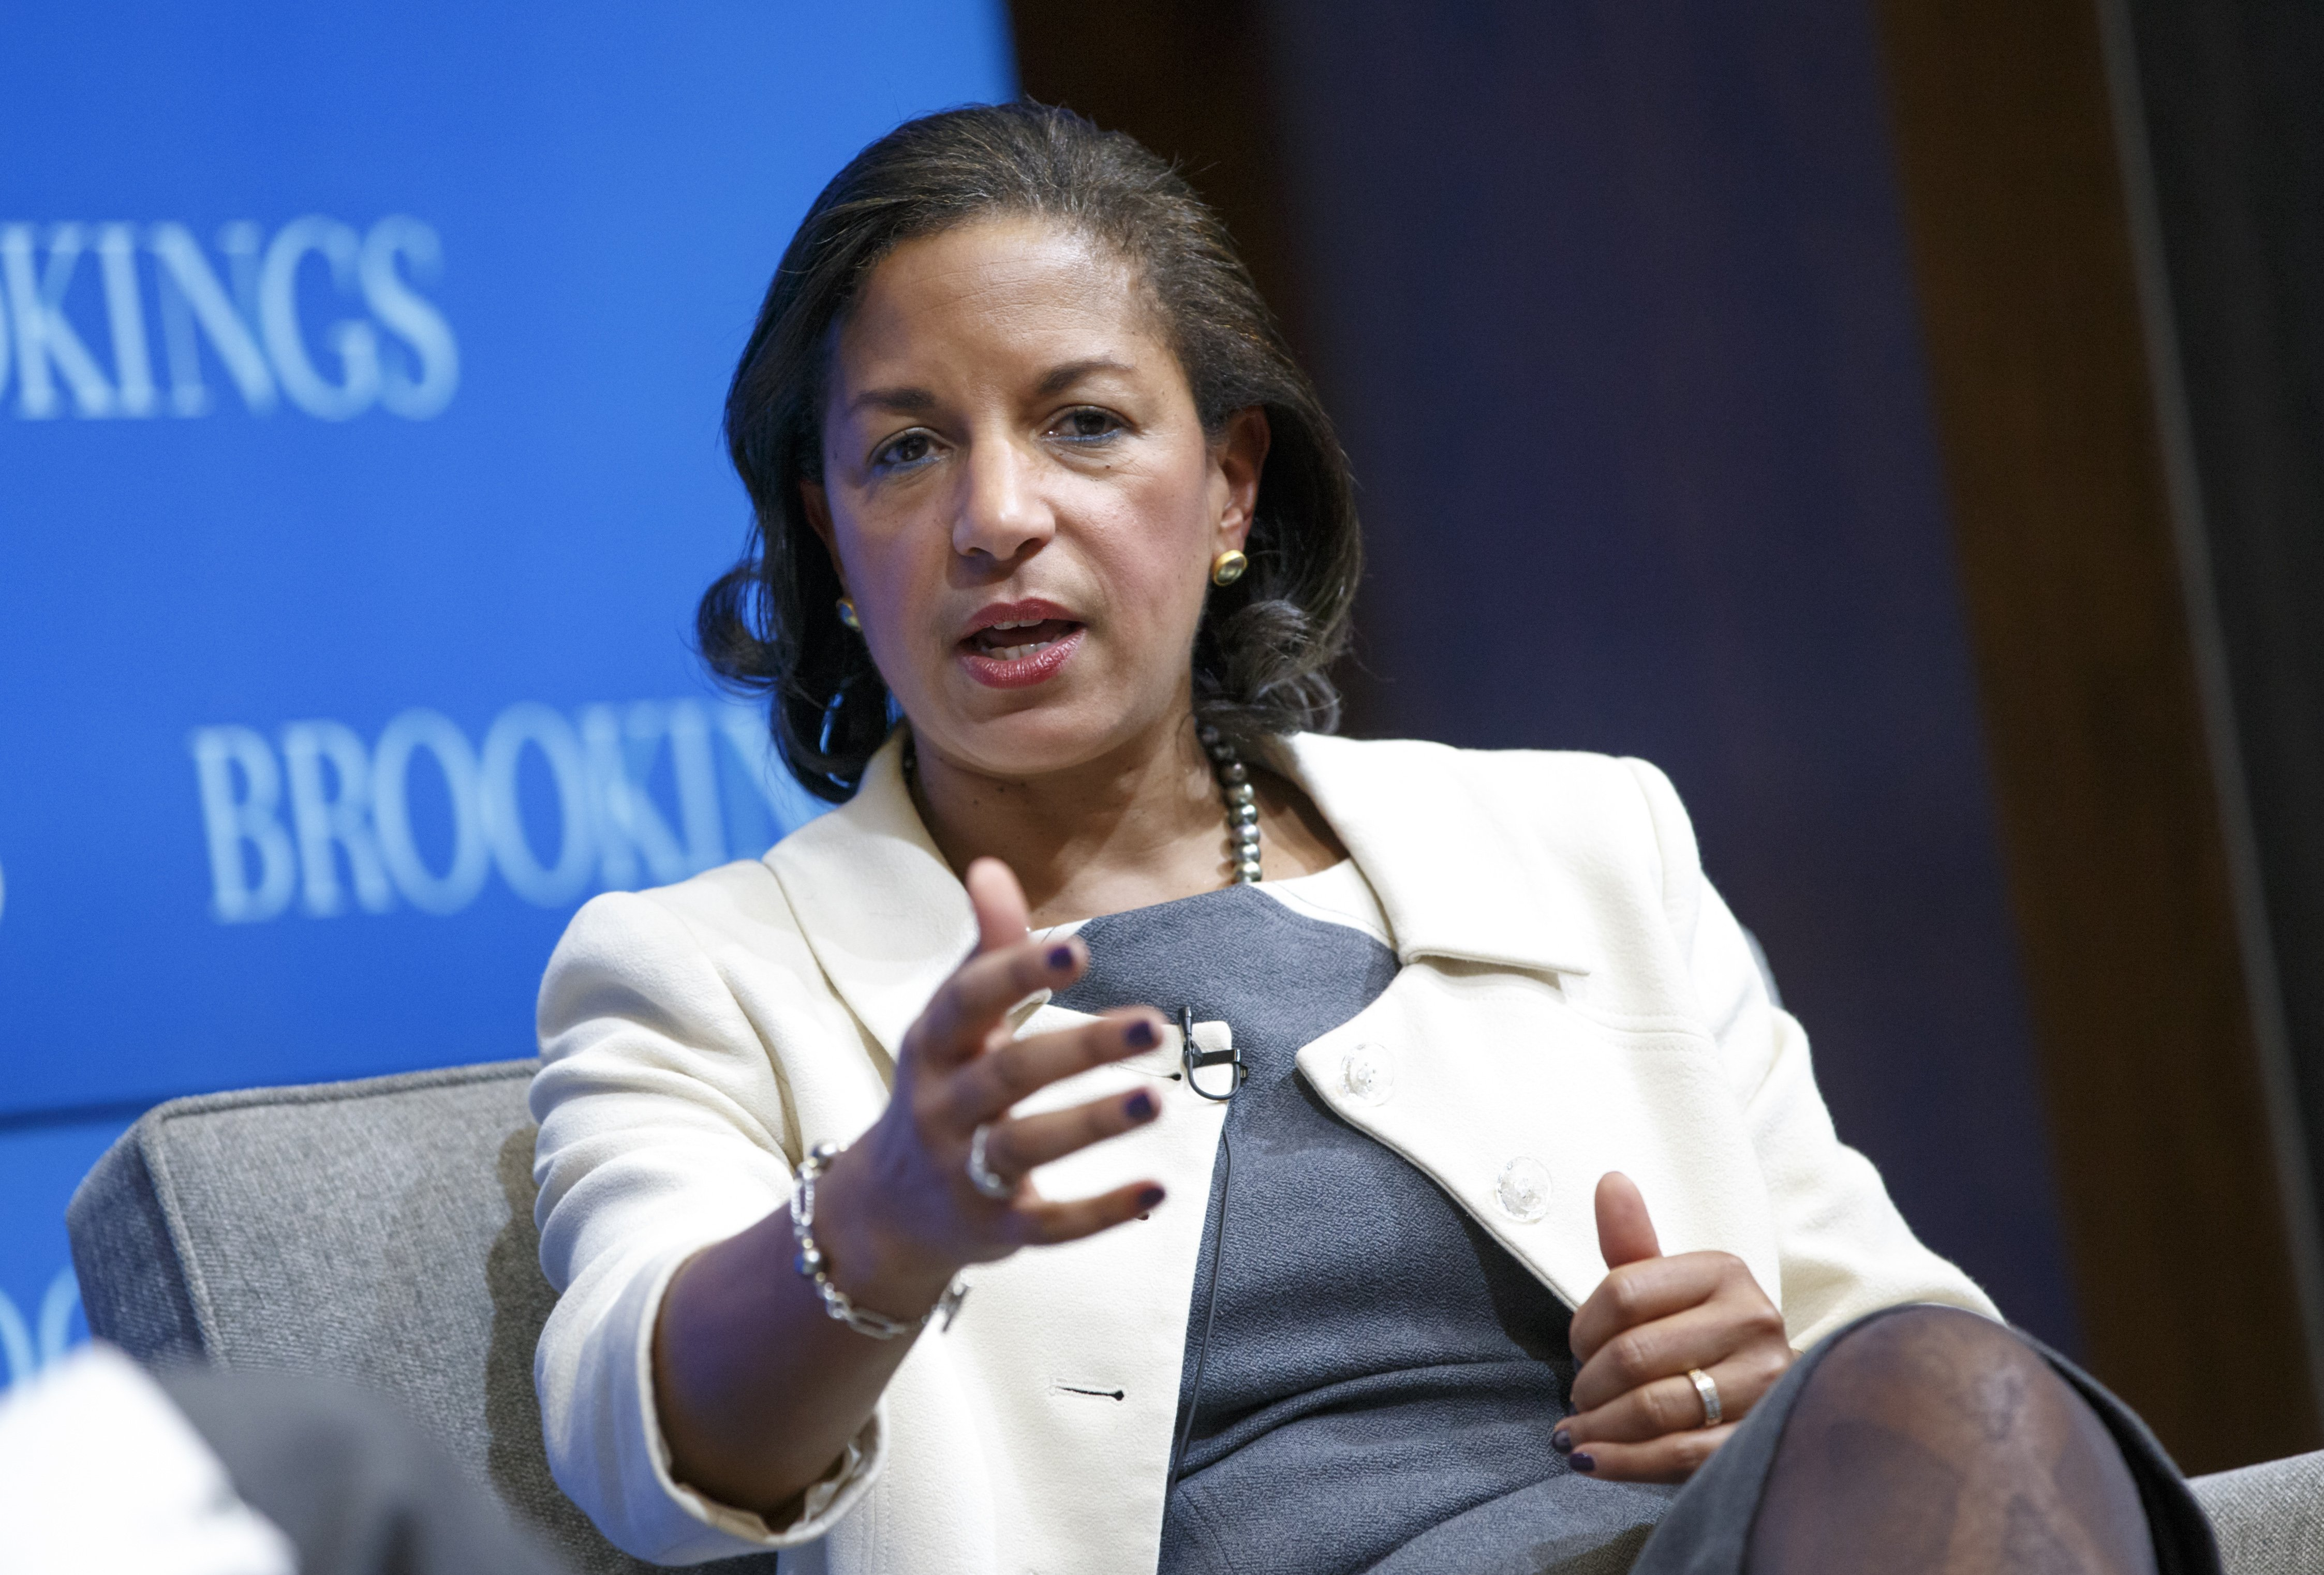 National Security Adviser Susan Rice speaks at the Brookings Institution to outline President Barack Obama's foreign policy priorities on Feb. 6, 2015, in Washington.